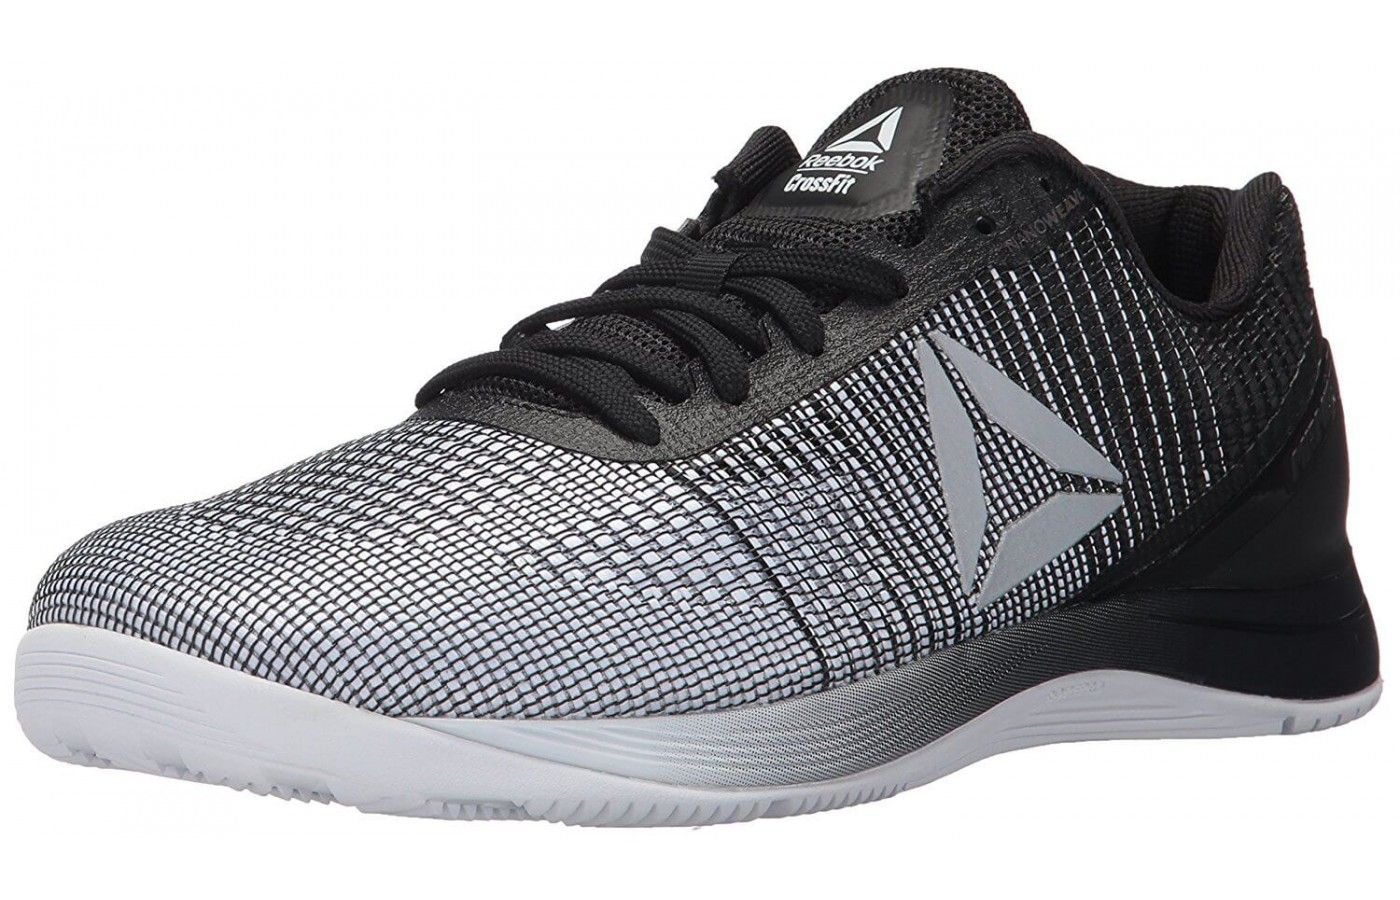 wide selection of designs buy online promo codes Reebok CrossFit Nano 7 Weave | Running Shoes in 2019 ...